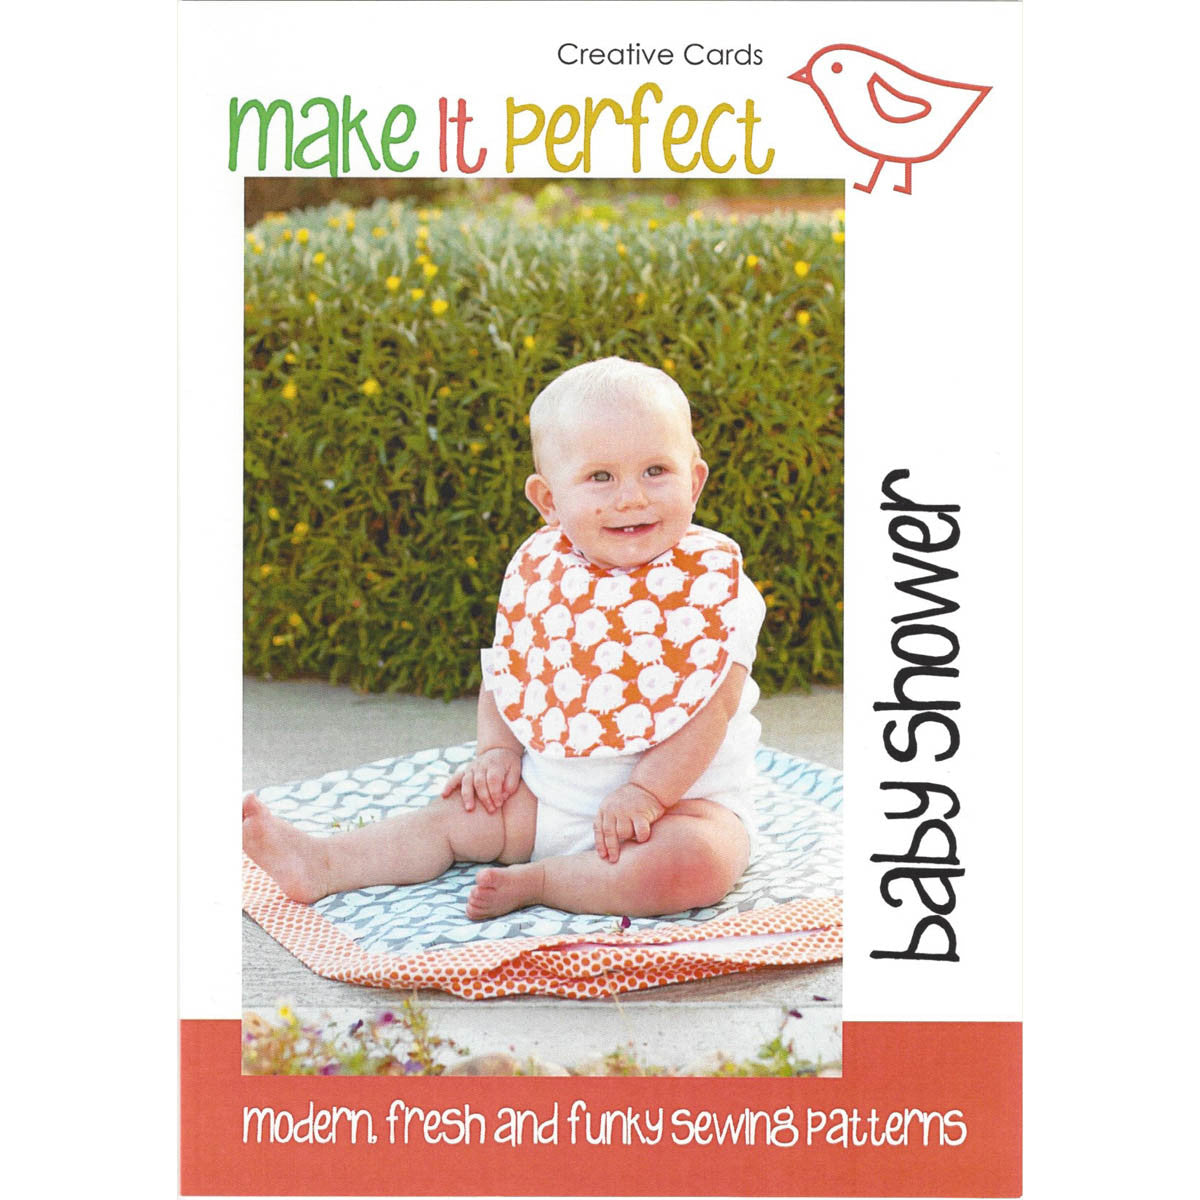 BABY SHOWER  Creative Cards Pattern for Bib and Blanket - Australian design by Make It Perfect